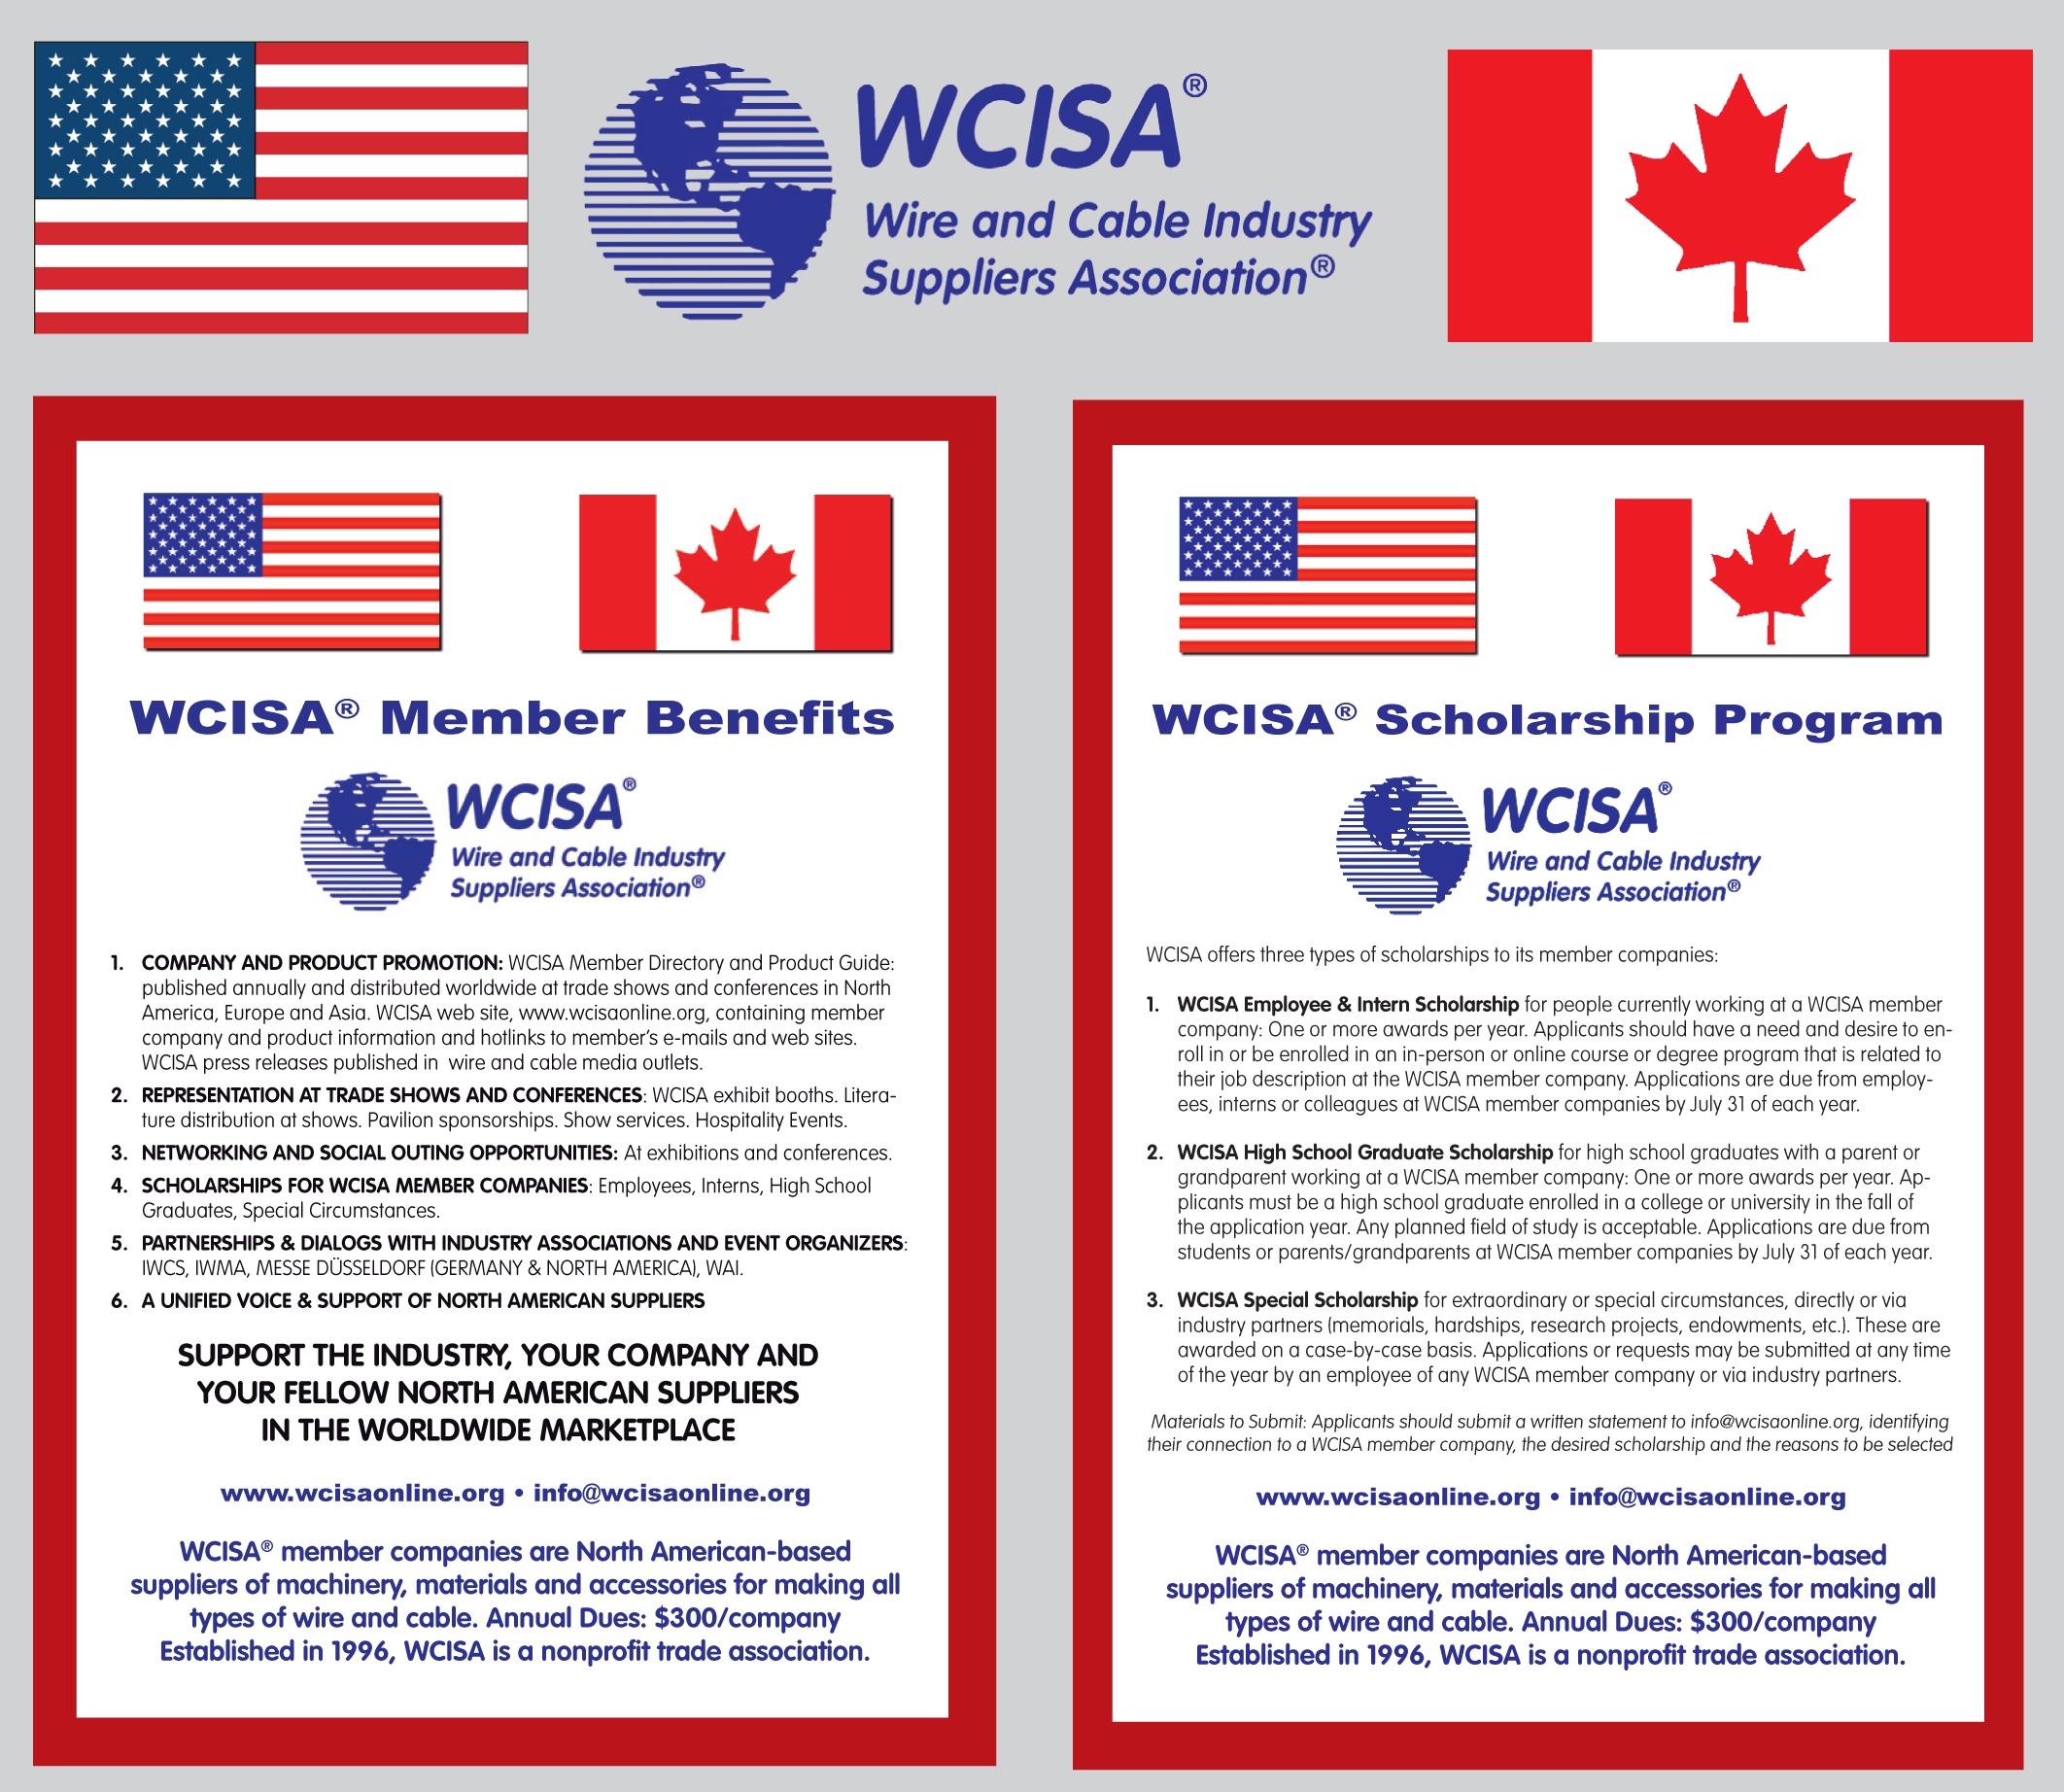 WCISA - Wire & Cable Industry Suppliers Association - Mission